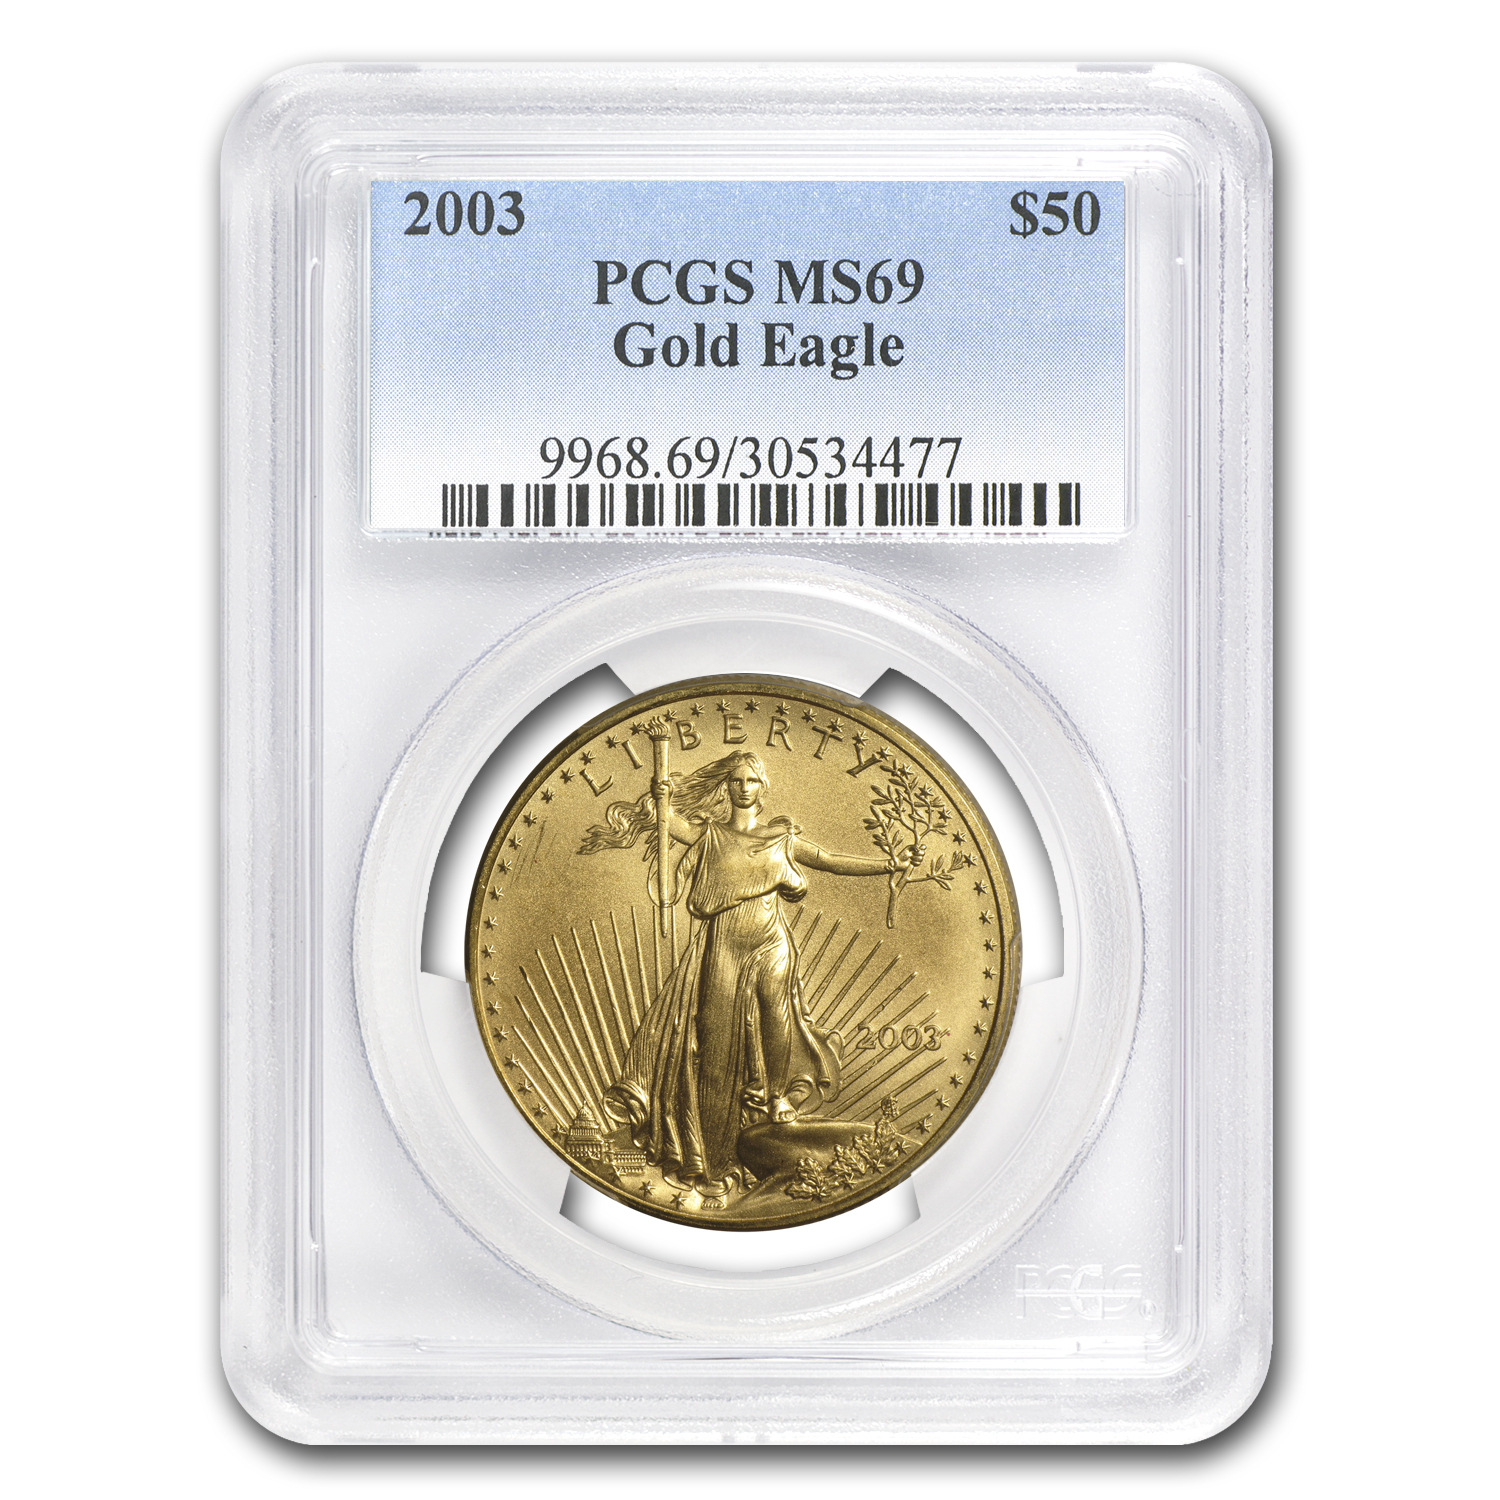 2003 1 oz Gold American Eagle MS-69 PCGS